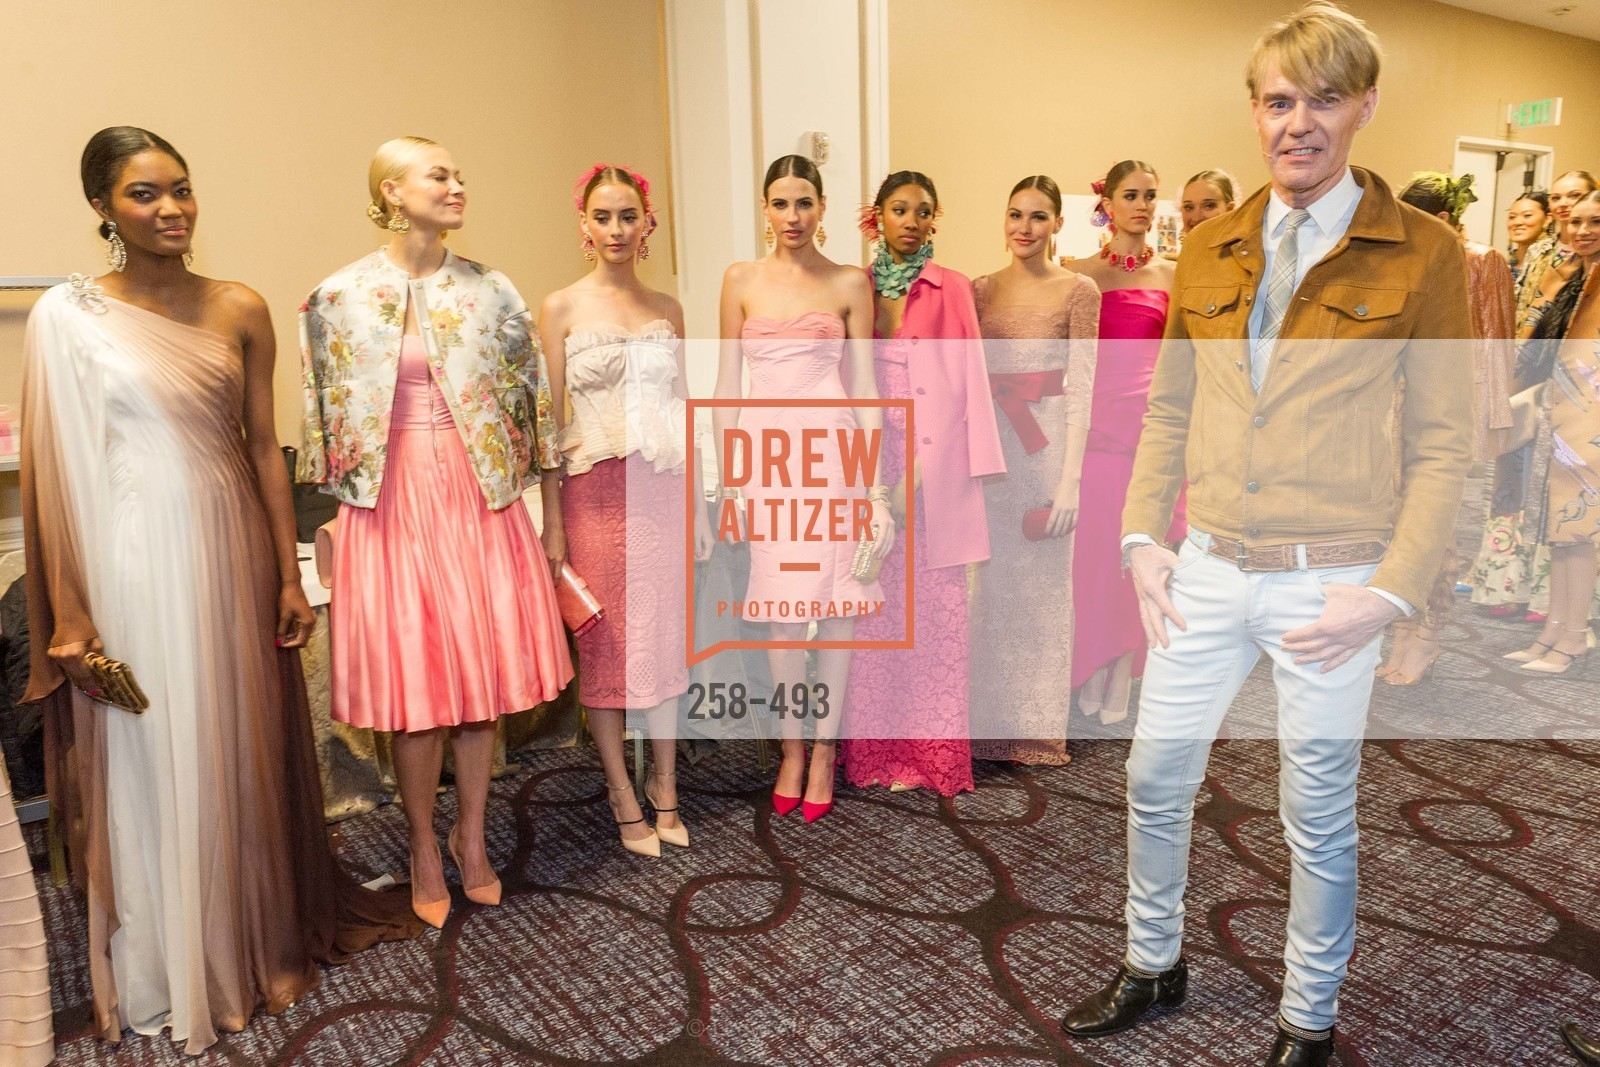 Ken Downing, SAN FRANCISCO BALLET AUXULIARY 2014 Fashion Show, US. The Fairmont, April 3rd, 2014,Drew Altizer, Drew Altizer Photography, full-service event agency, private events, San Francisco photographer, photographer California